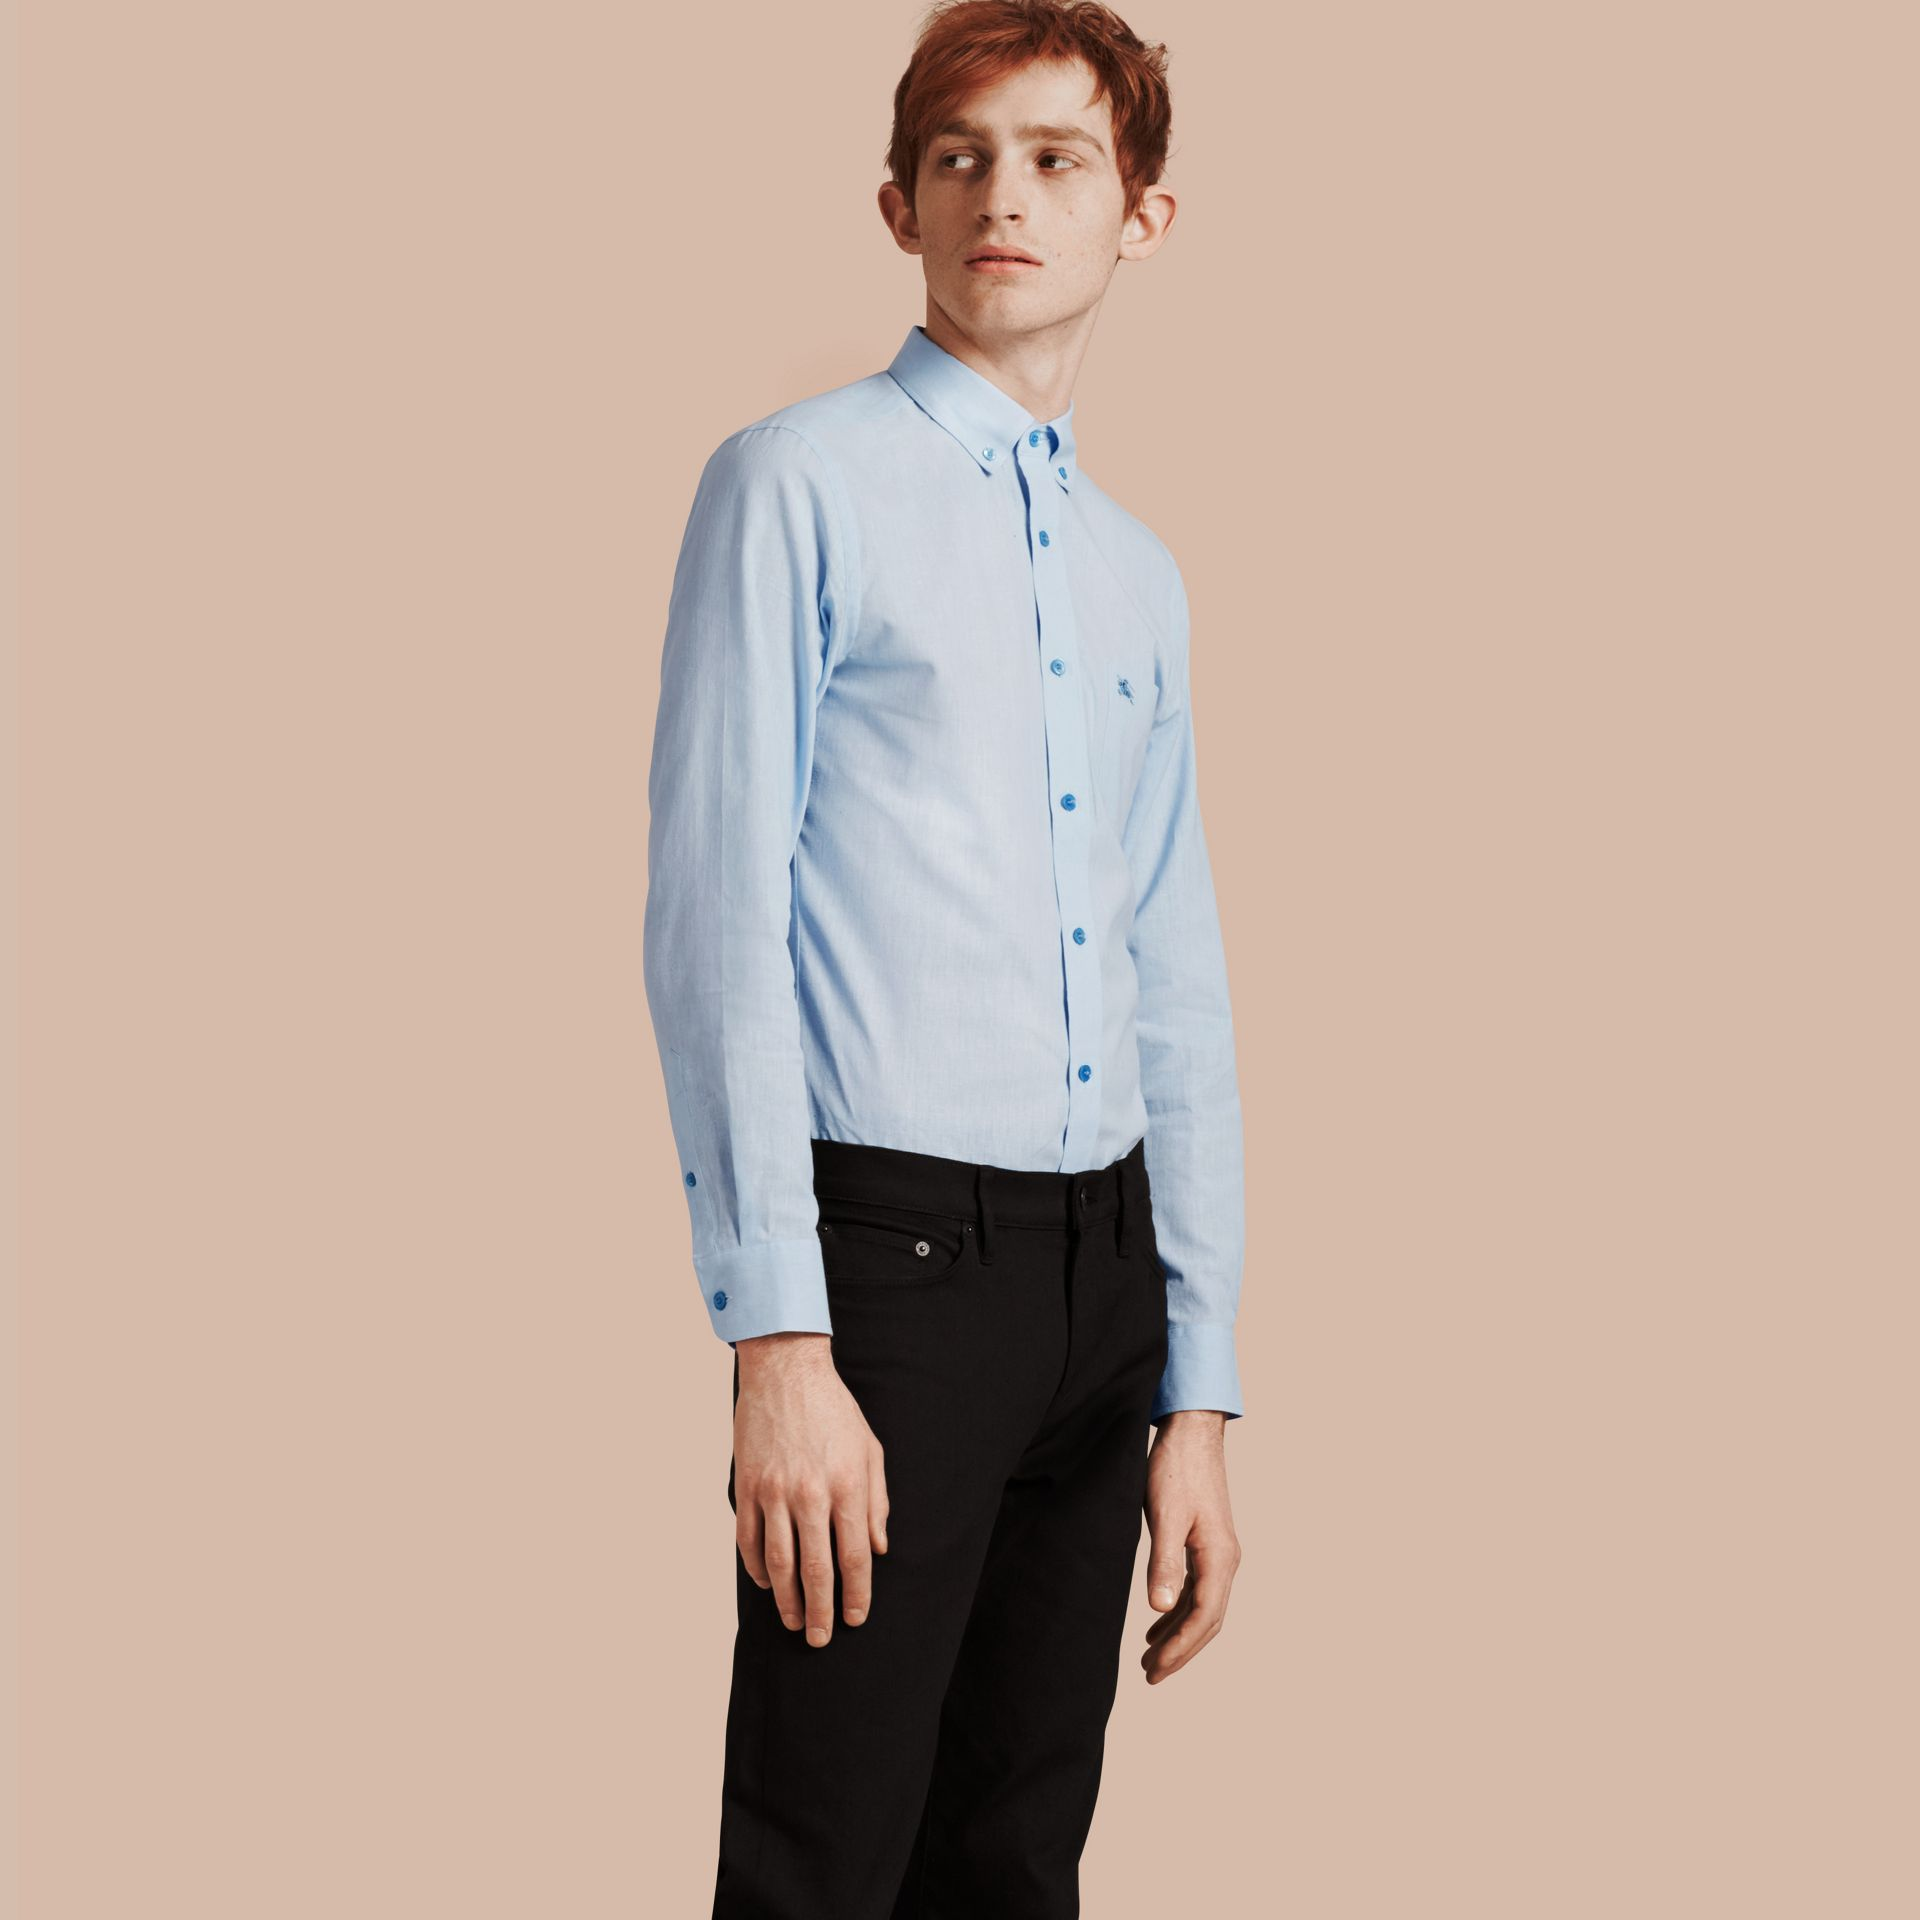 Pale blue Button-down Collar Cotton Linen Shirt Pale Blue - gallery image 1